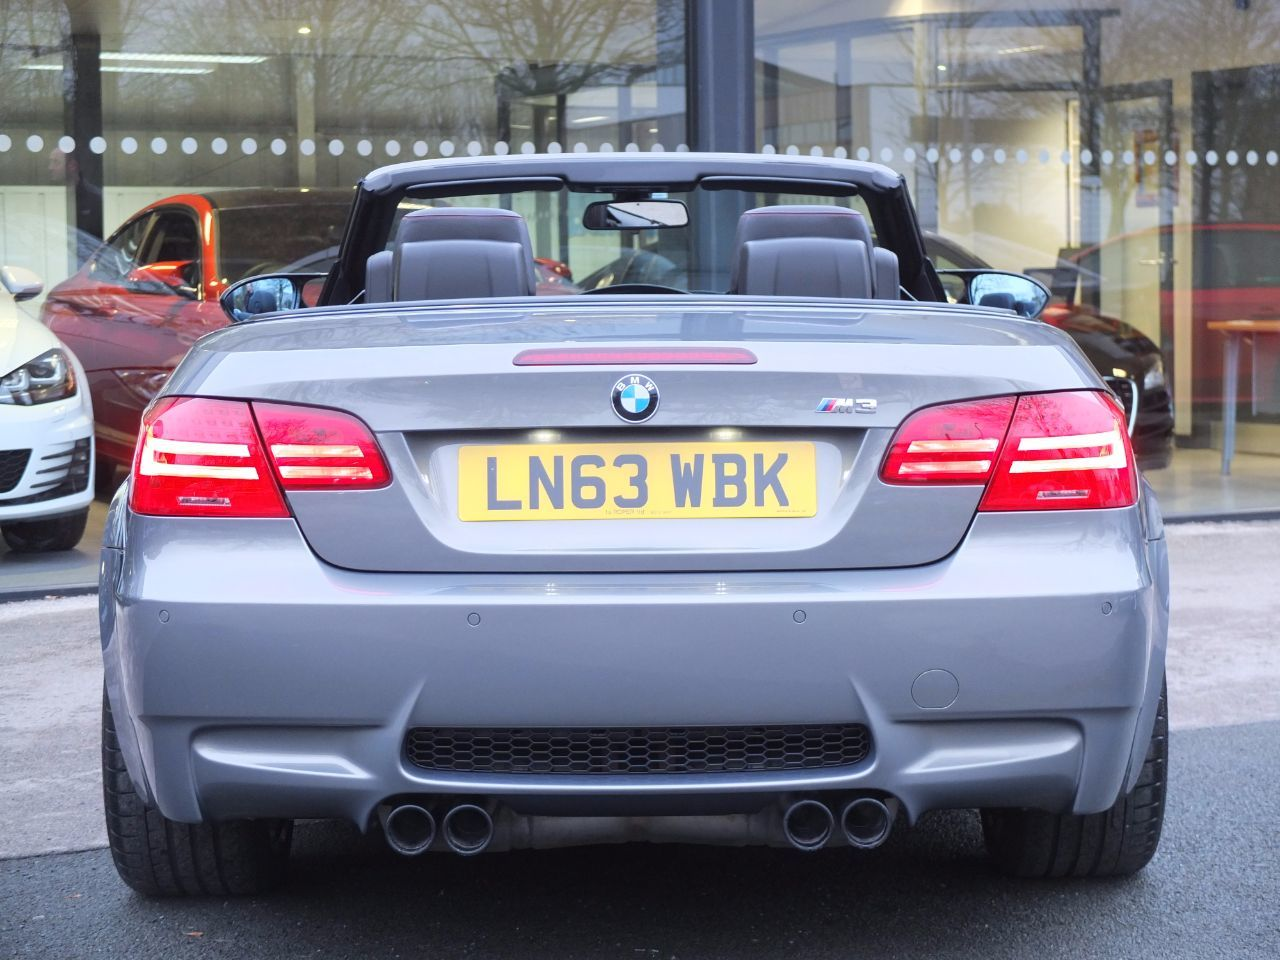 BMW M3 4.0 M3 Convertible '500 Limited Edition' DCT Convertible Petrol Bmw Individual Paint Finish Stratus Grey